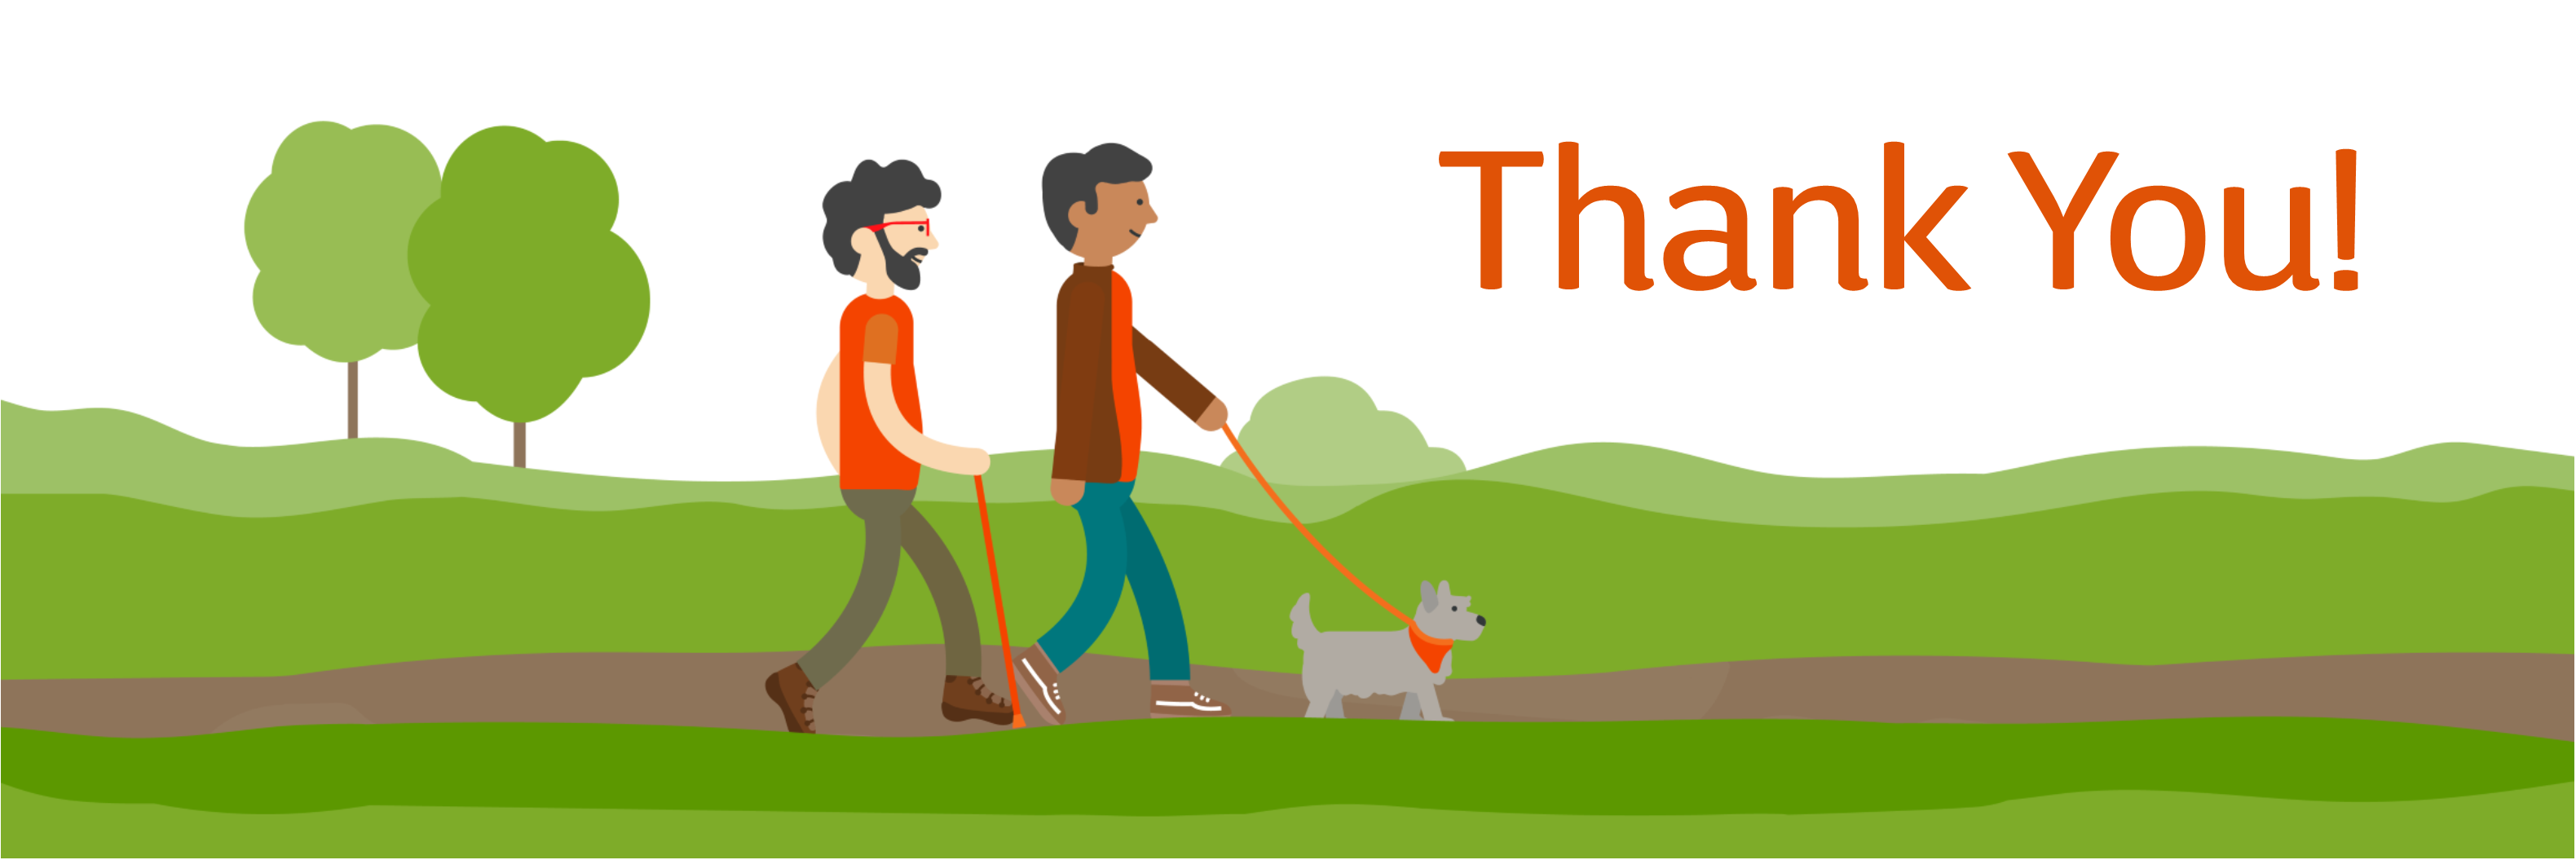 MS Society - Thank you for your donation - illustration of 2 men walk with a god